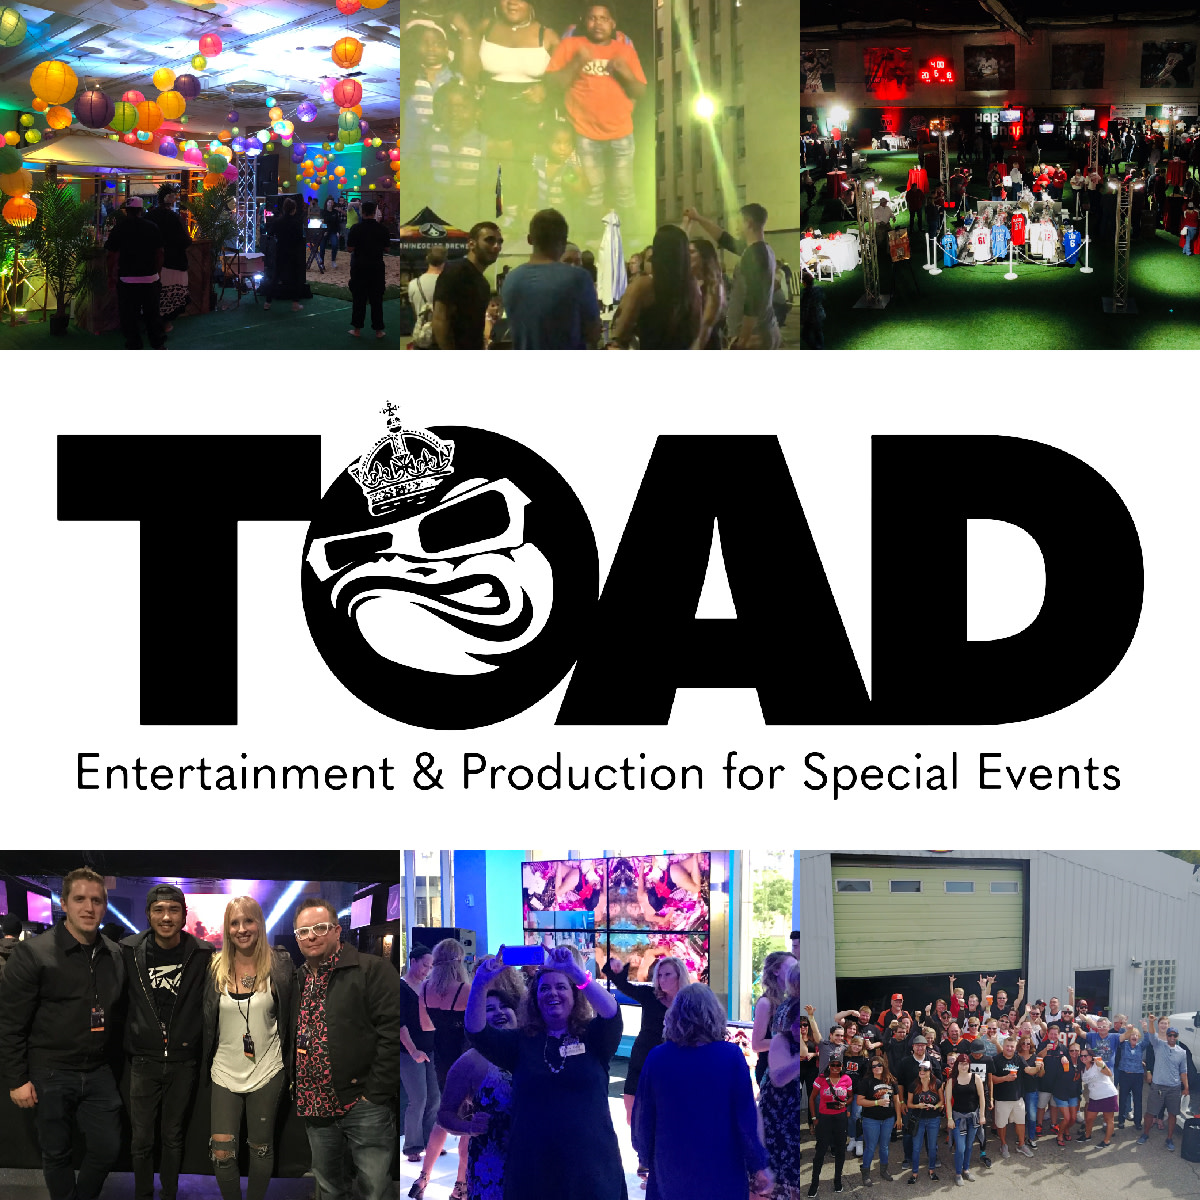 Toad Productions